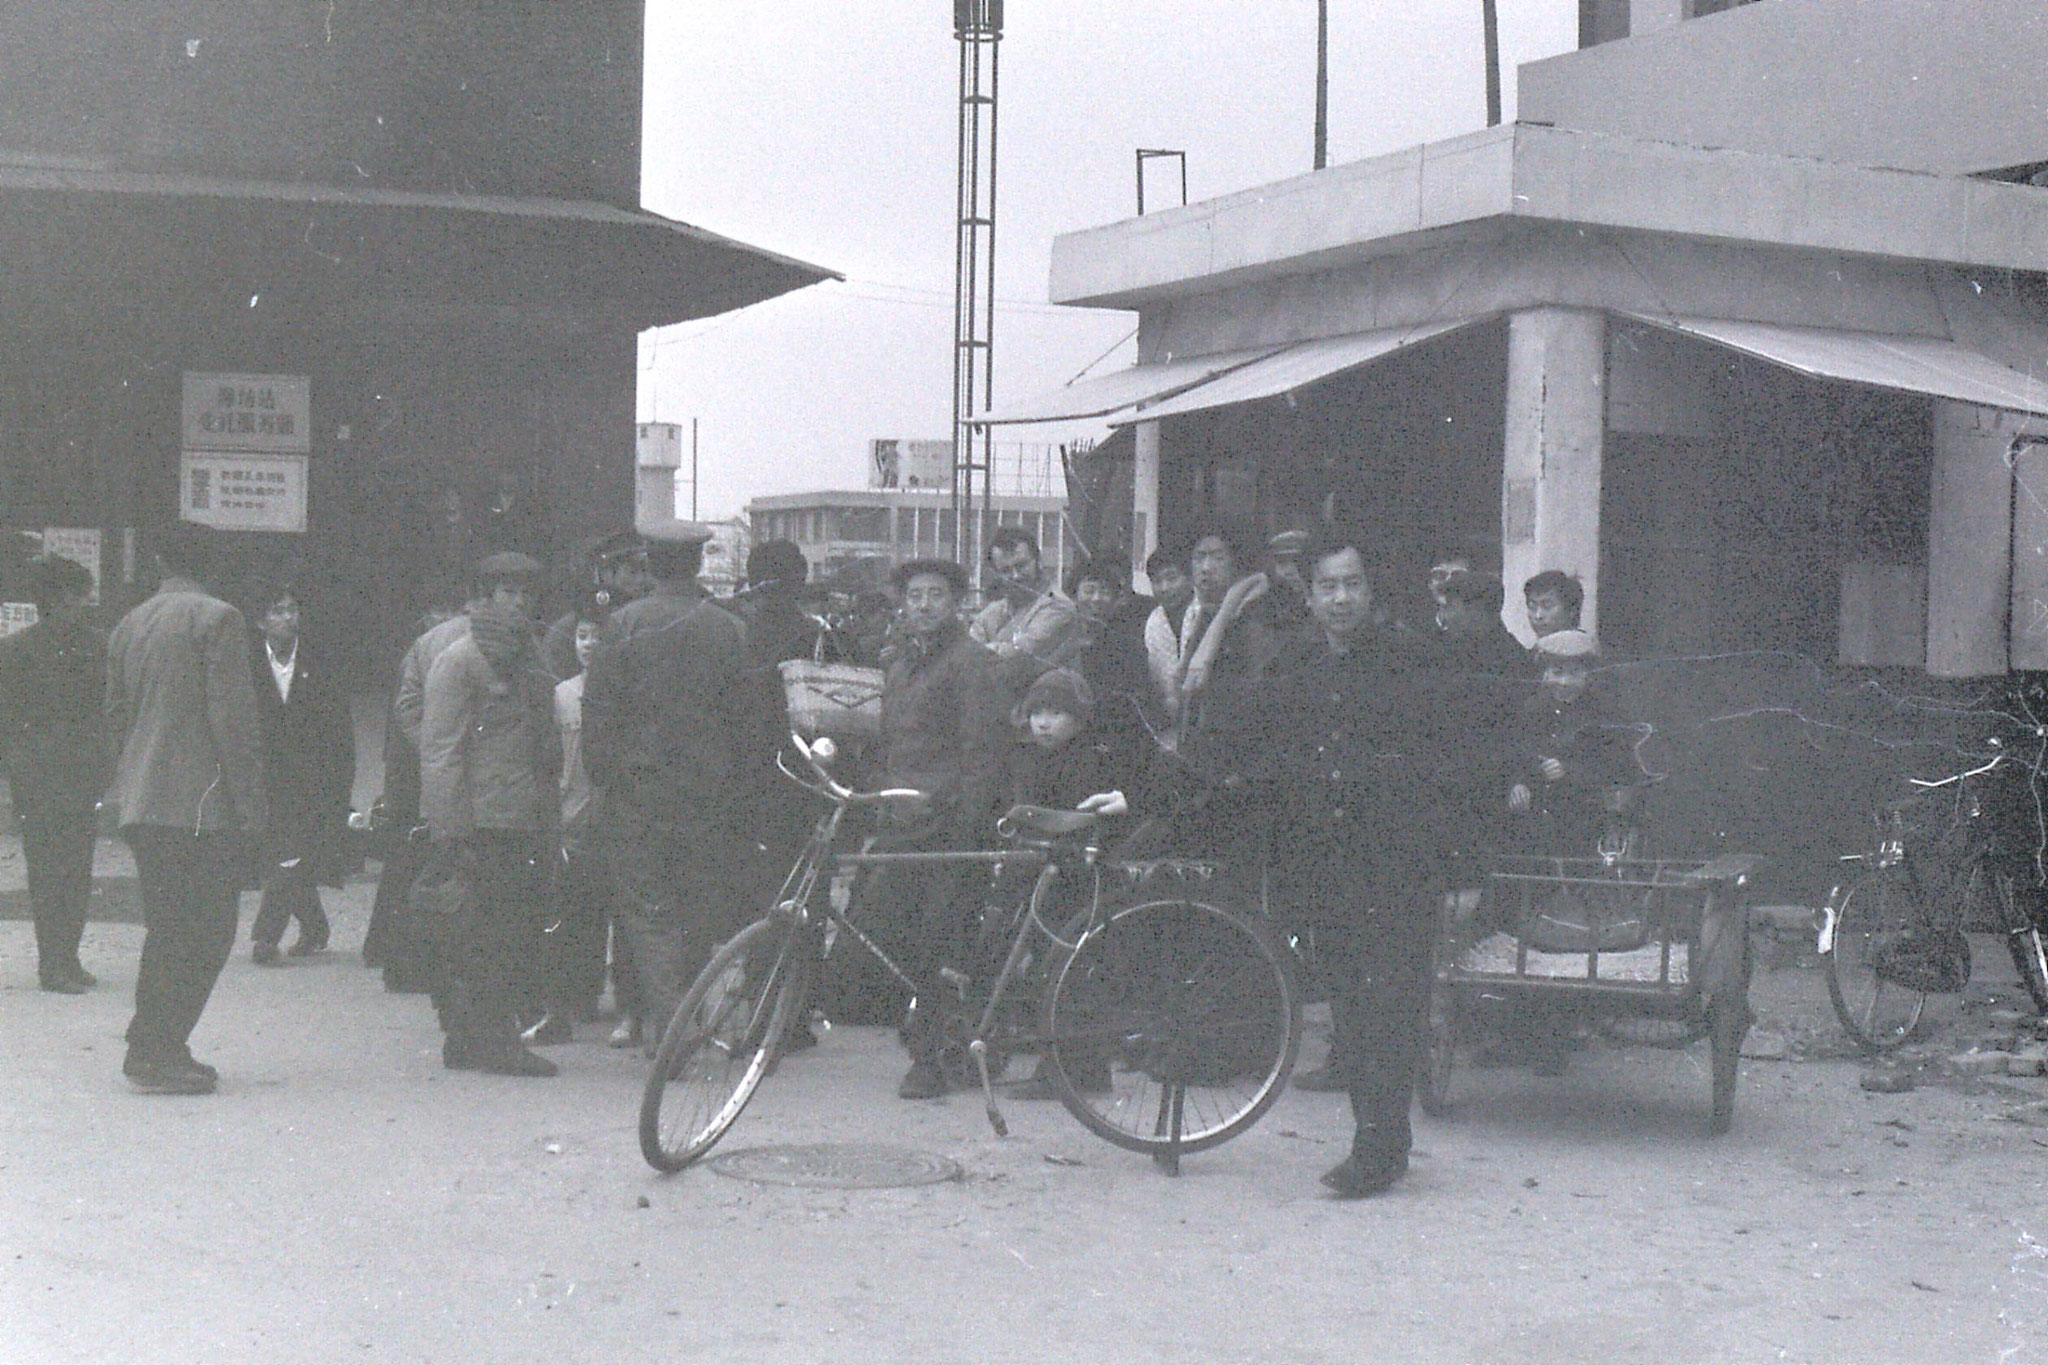 14/2/1989: 35: Weifang station